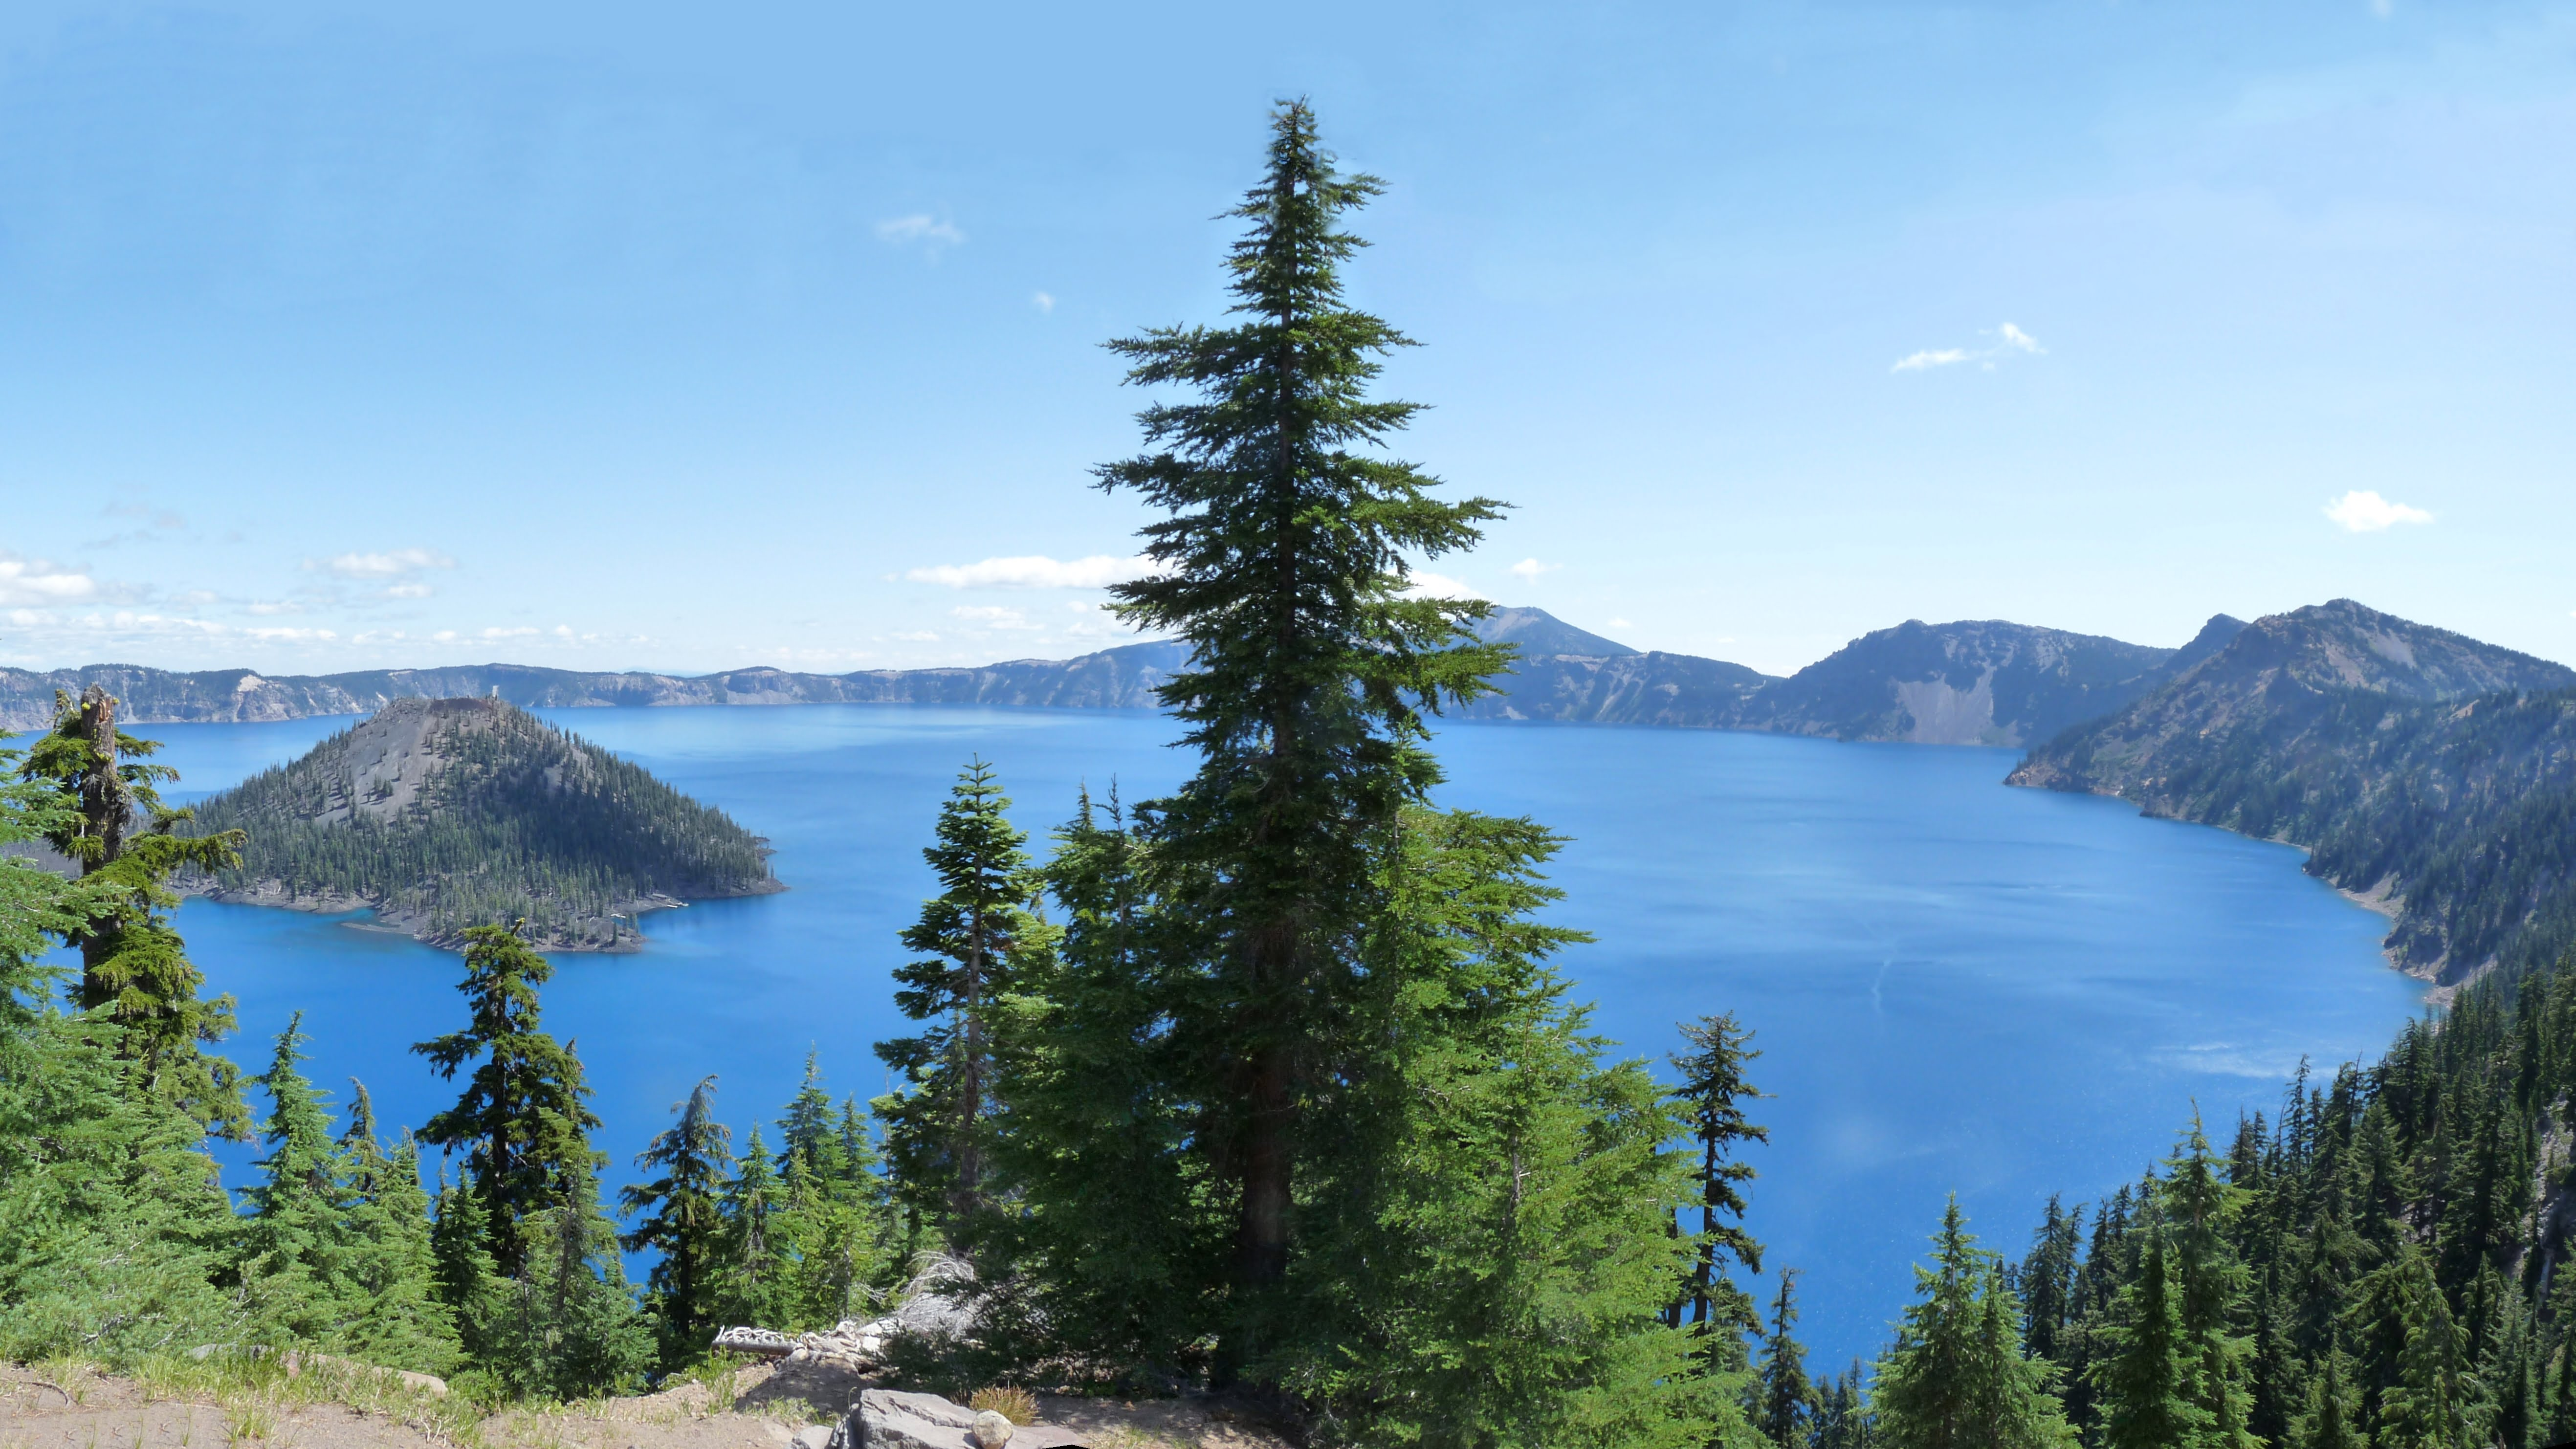 The classic view of Wizard Island in a spectacularly blue Crater Lake.